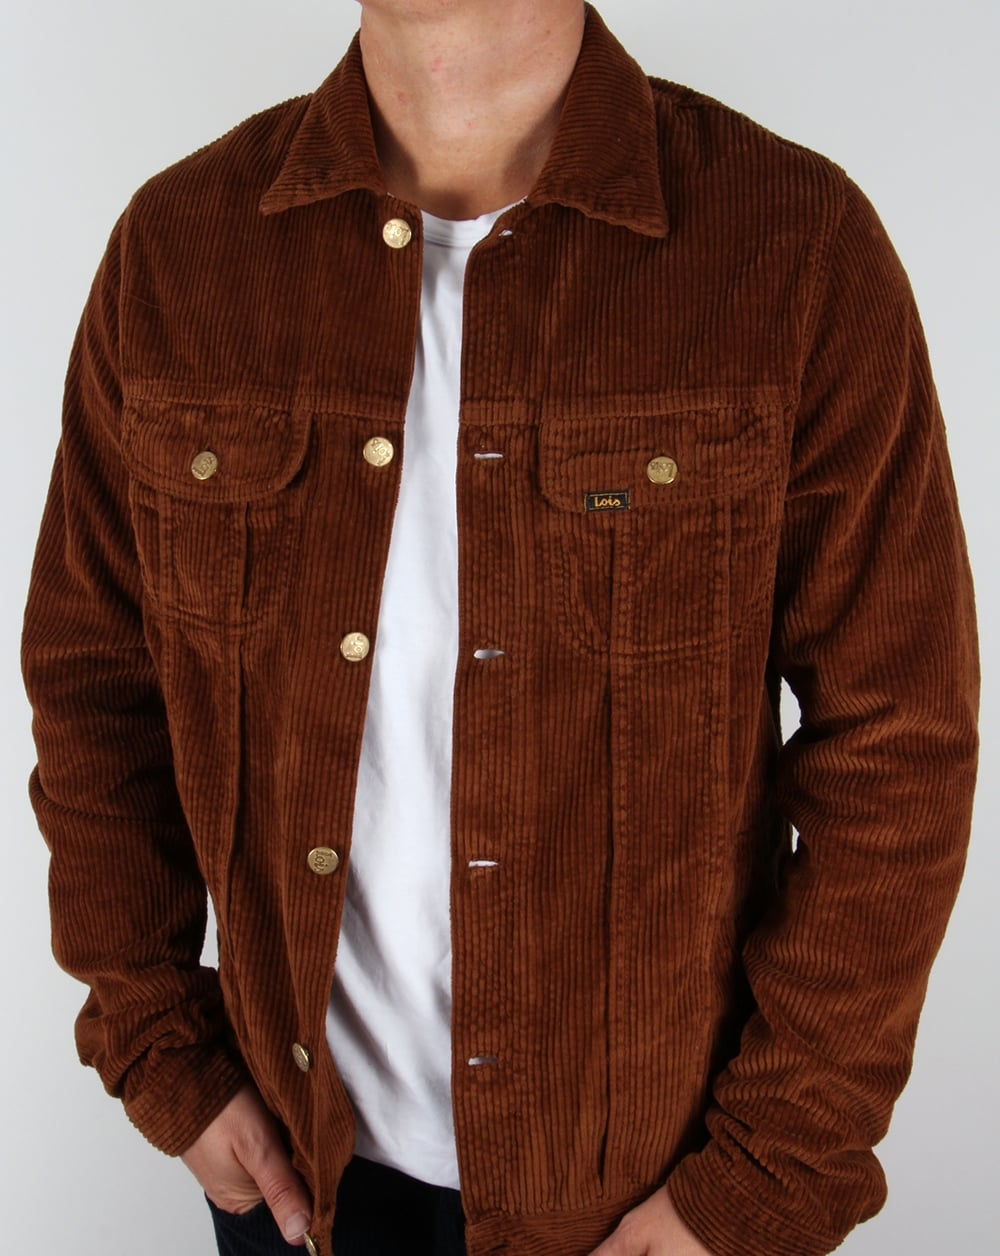 Buy low price, high quality brown jacket corduroy with worldwide shipping on dnxvvyut.ml